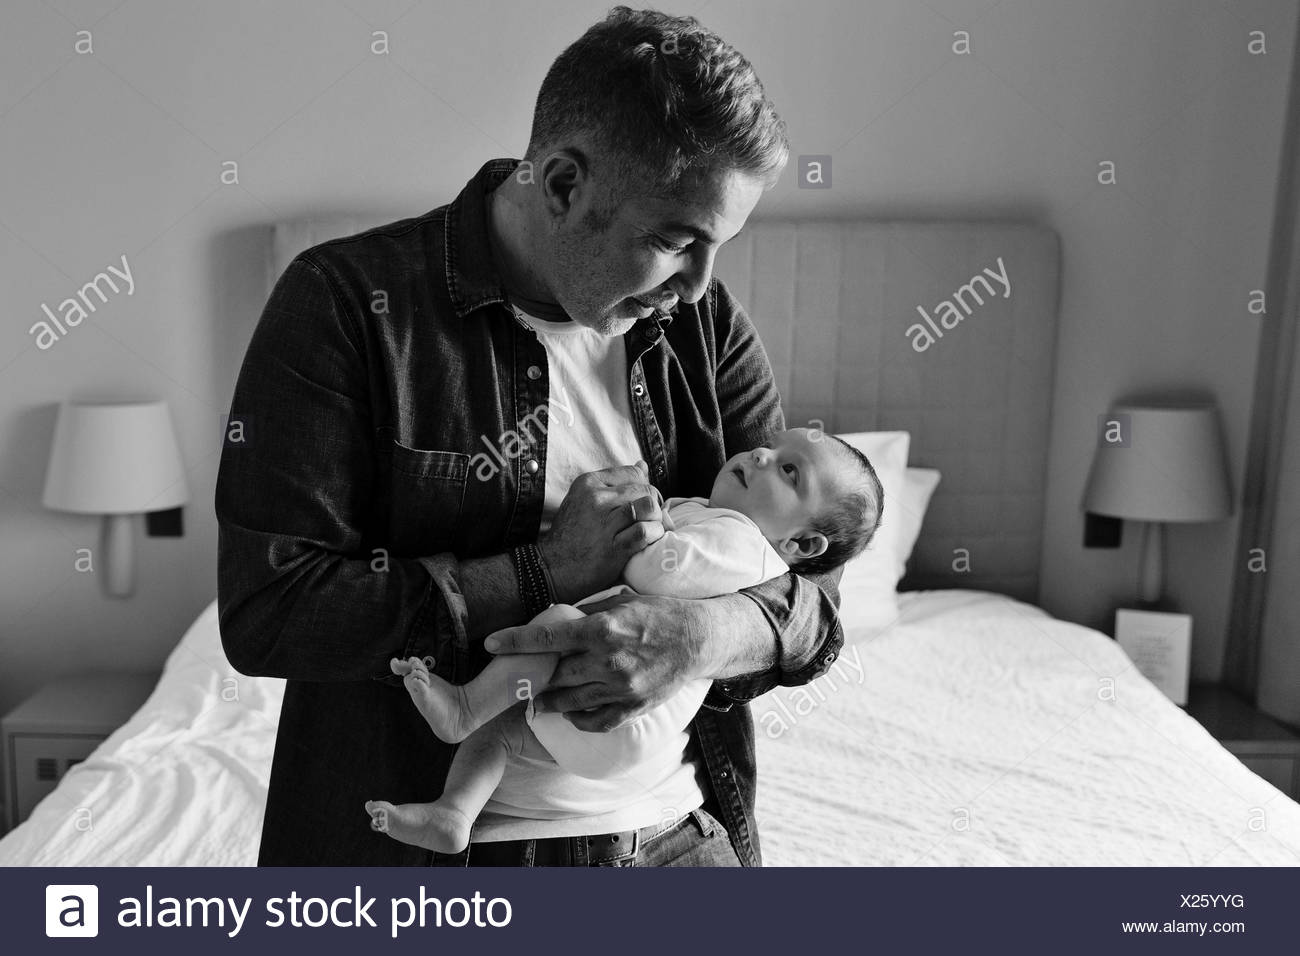 A man cradling a baby boy in his arms. - Stock Image